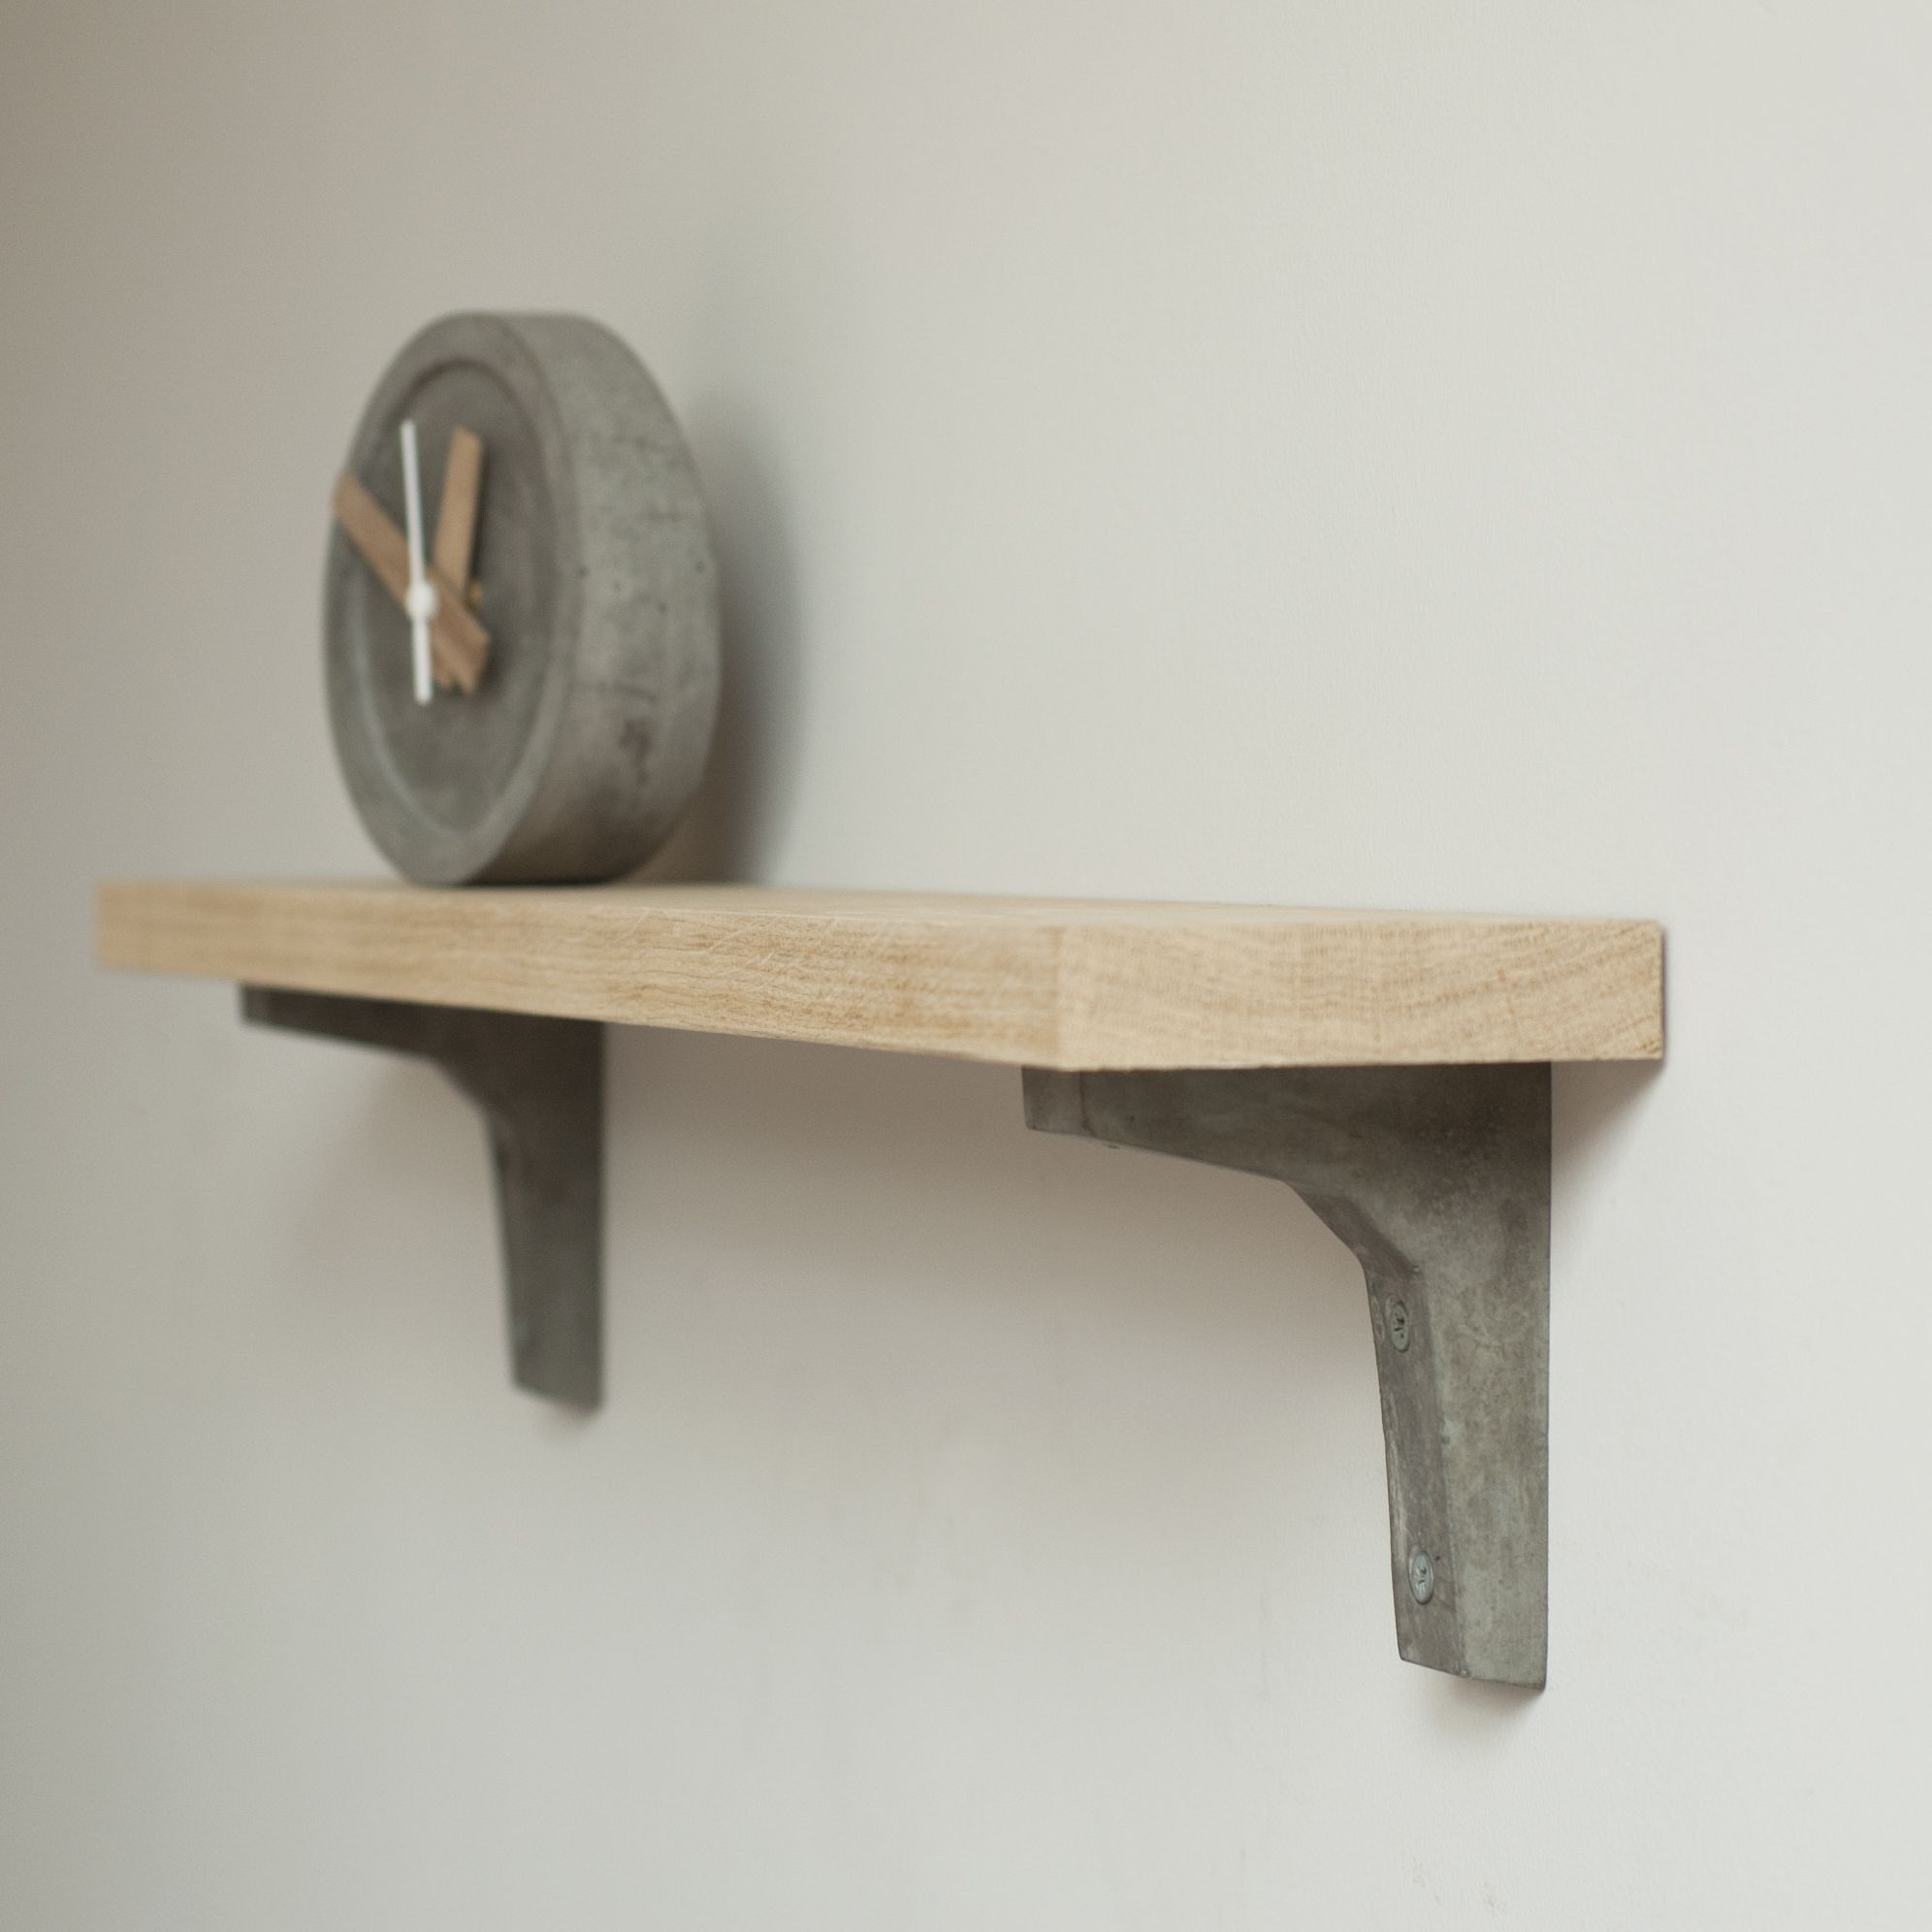 Concrete shelf bracket small Concreto y Yeso